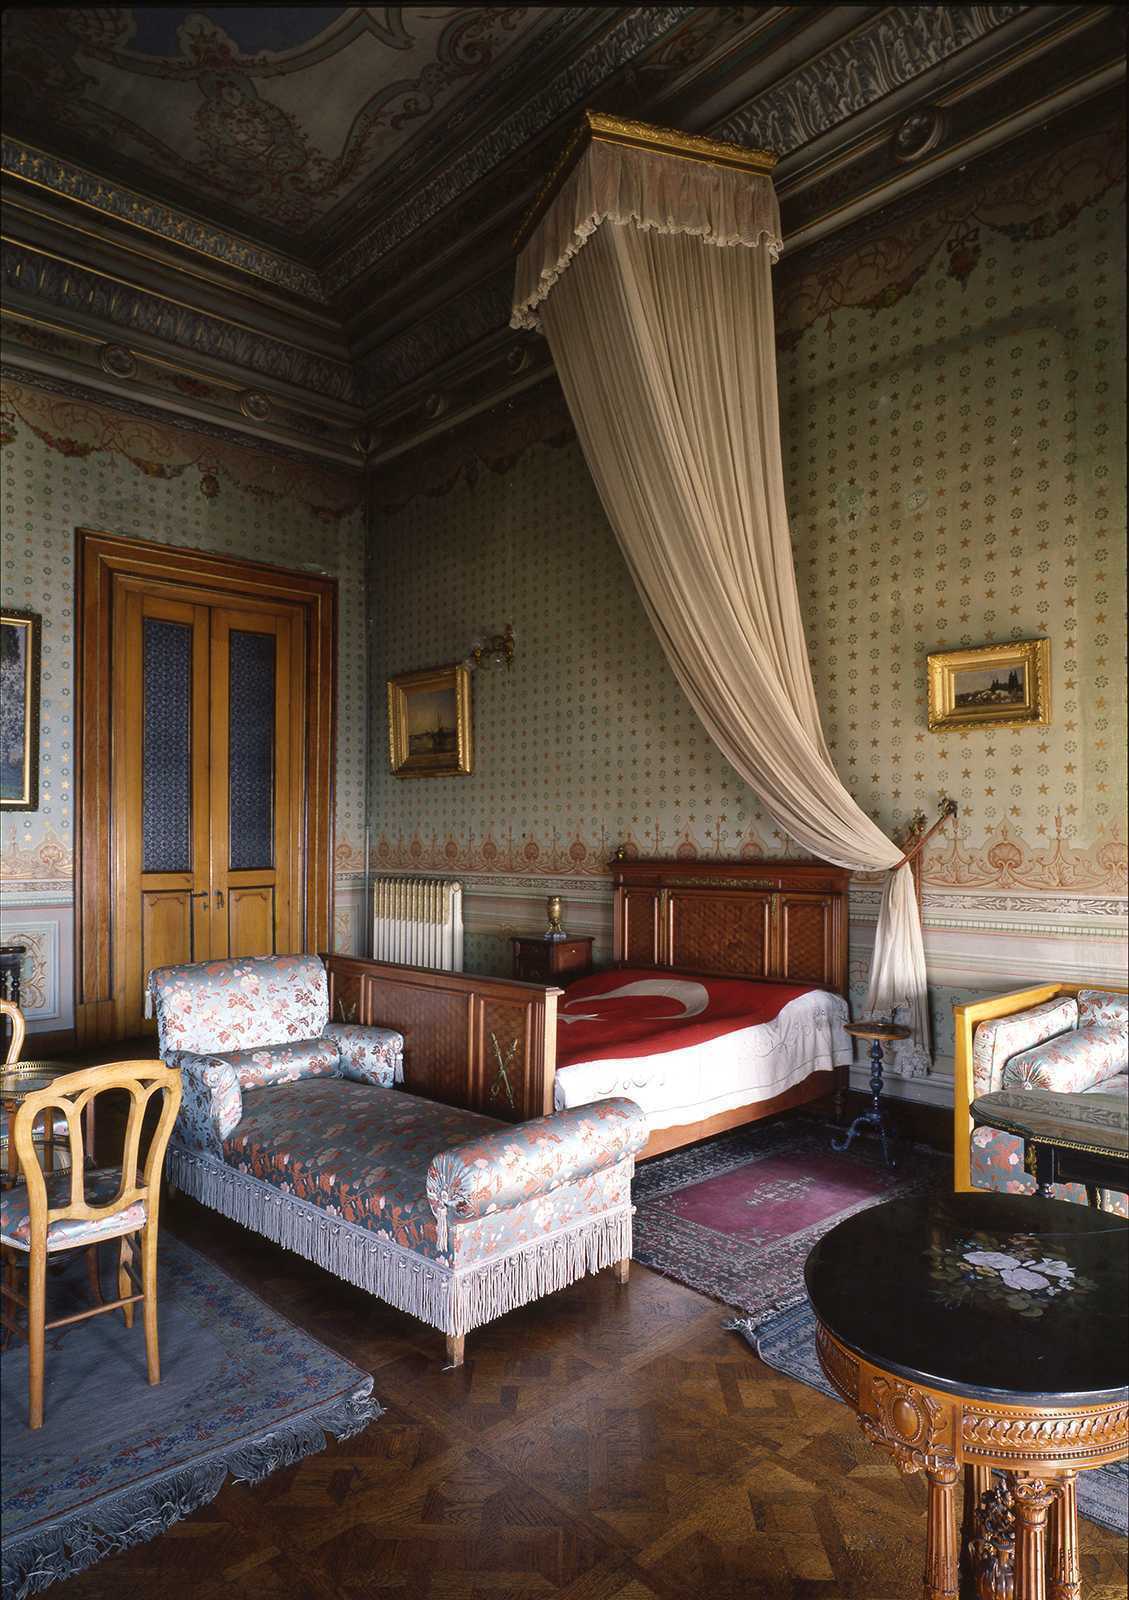 Ataturk's Room, Dolmabahce Palace, 1981.